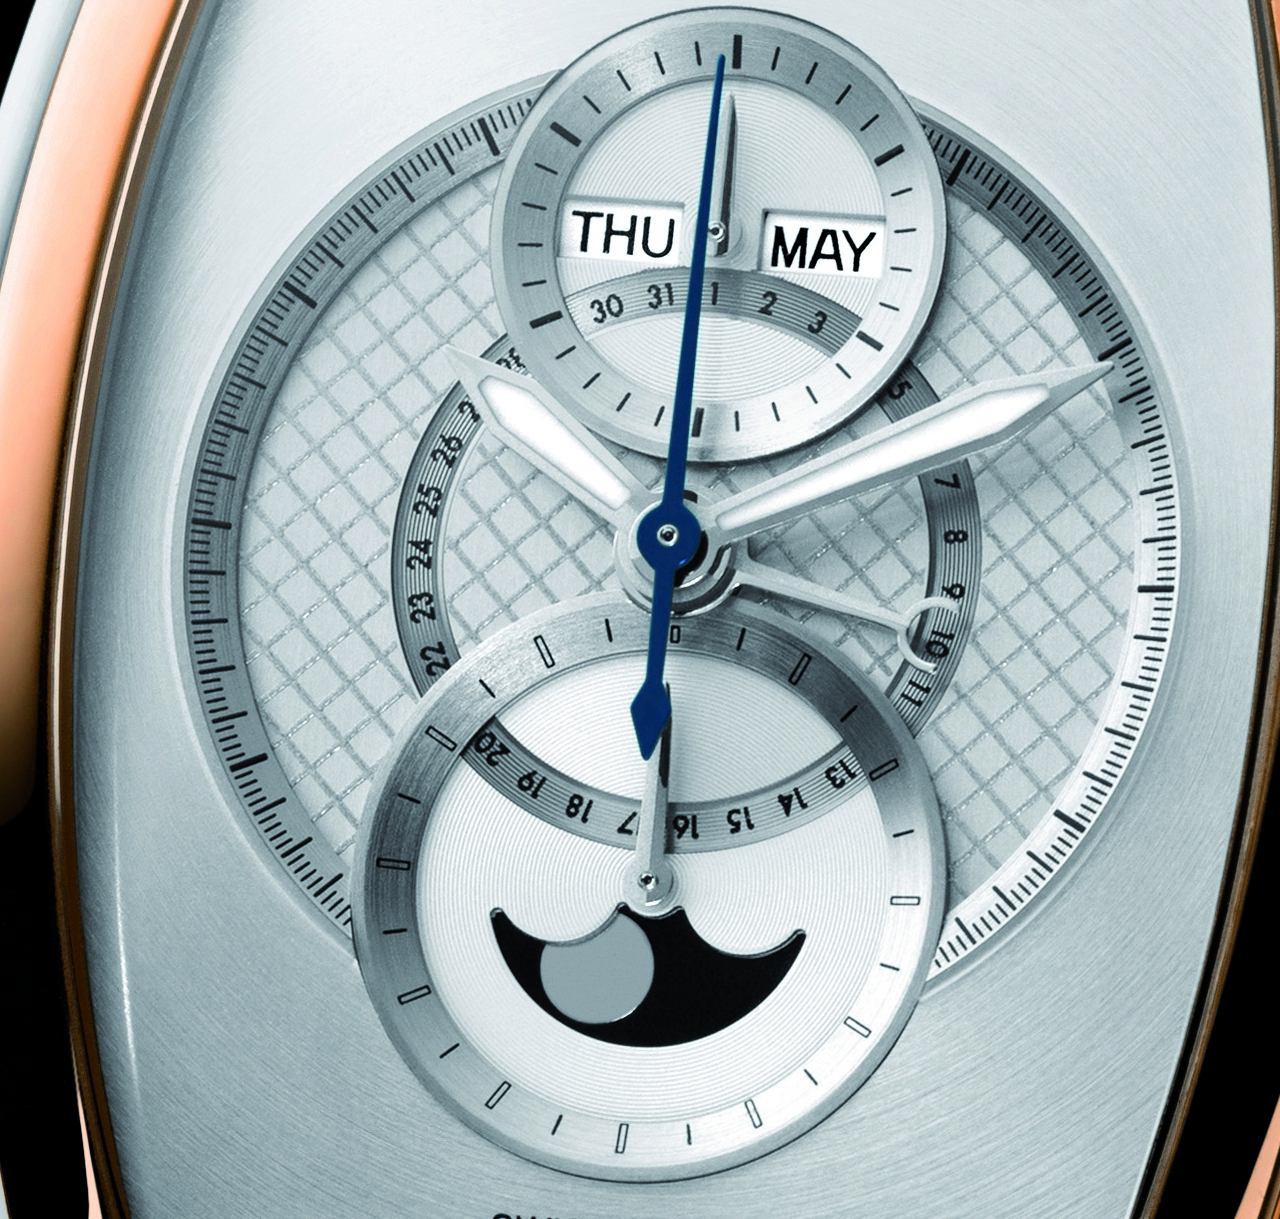 baselworld-2013-dubey-schaldenbrand-grand-dome-dt-rose-gold_0-100 6